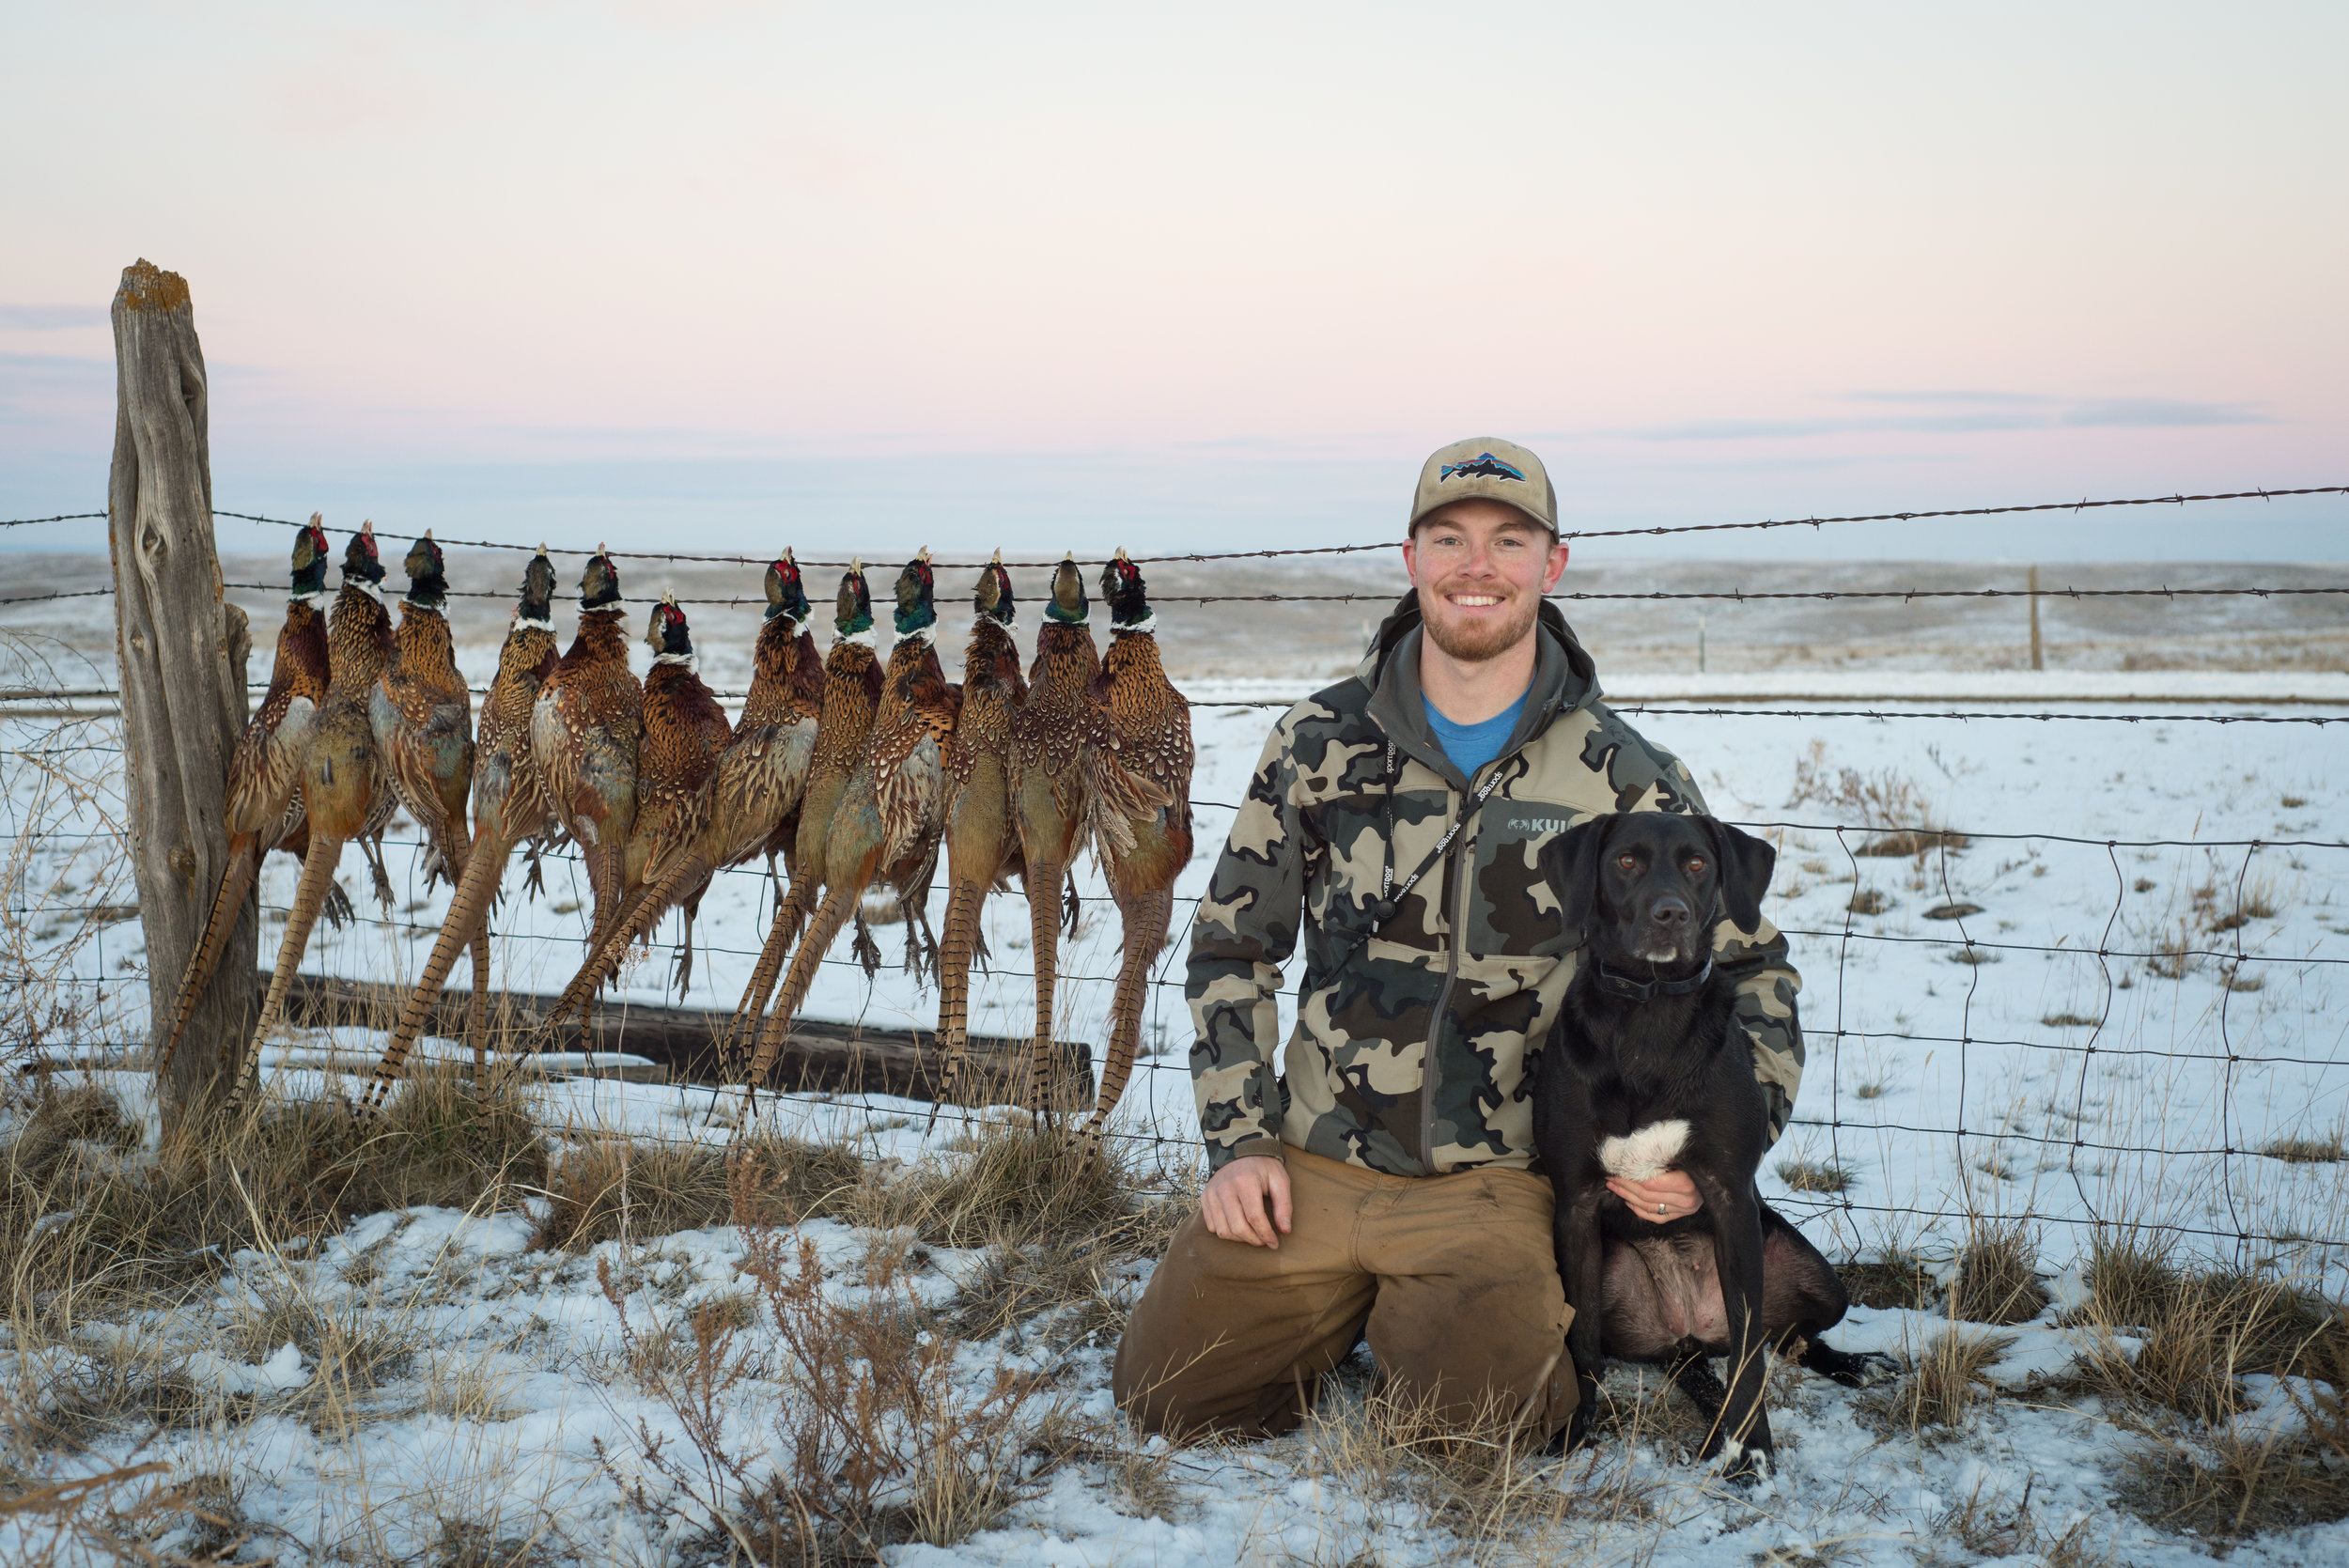 I look forward to hearing how we can make your dream hunt a reality. - ~ Anthony VonRuden Owner/Outfitter